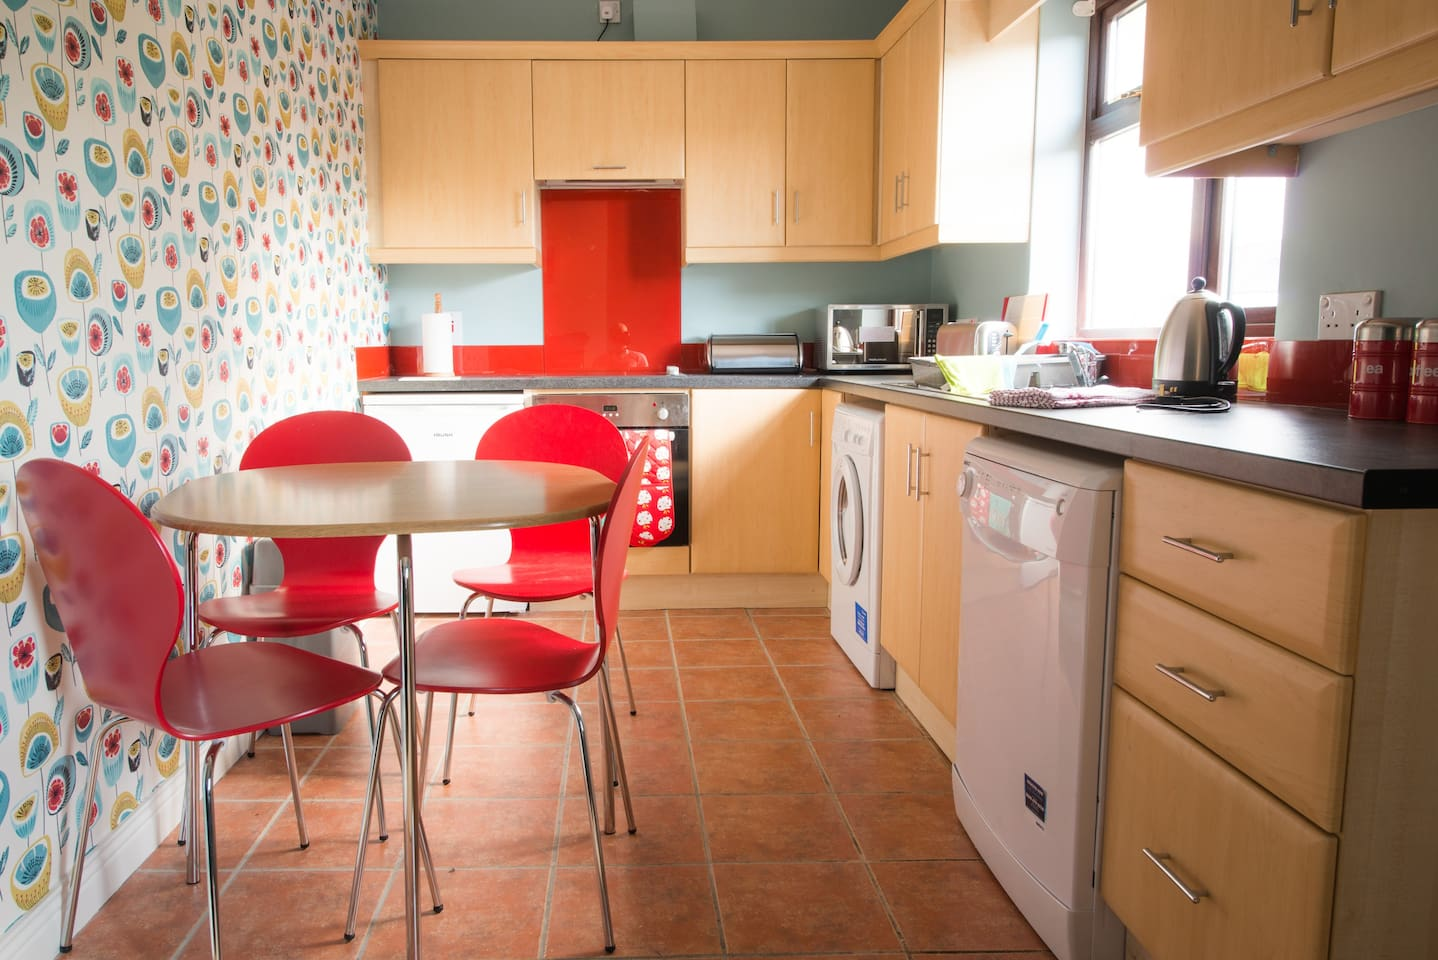 Fully fitted well equipped kitchen has crockery and utensils with oven, hob, microwave, dishwasher, washer/drier.